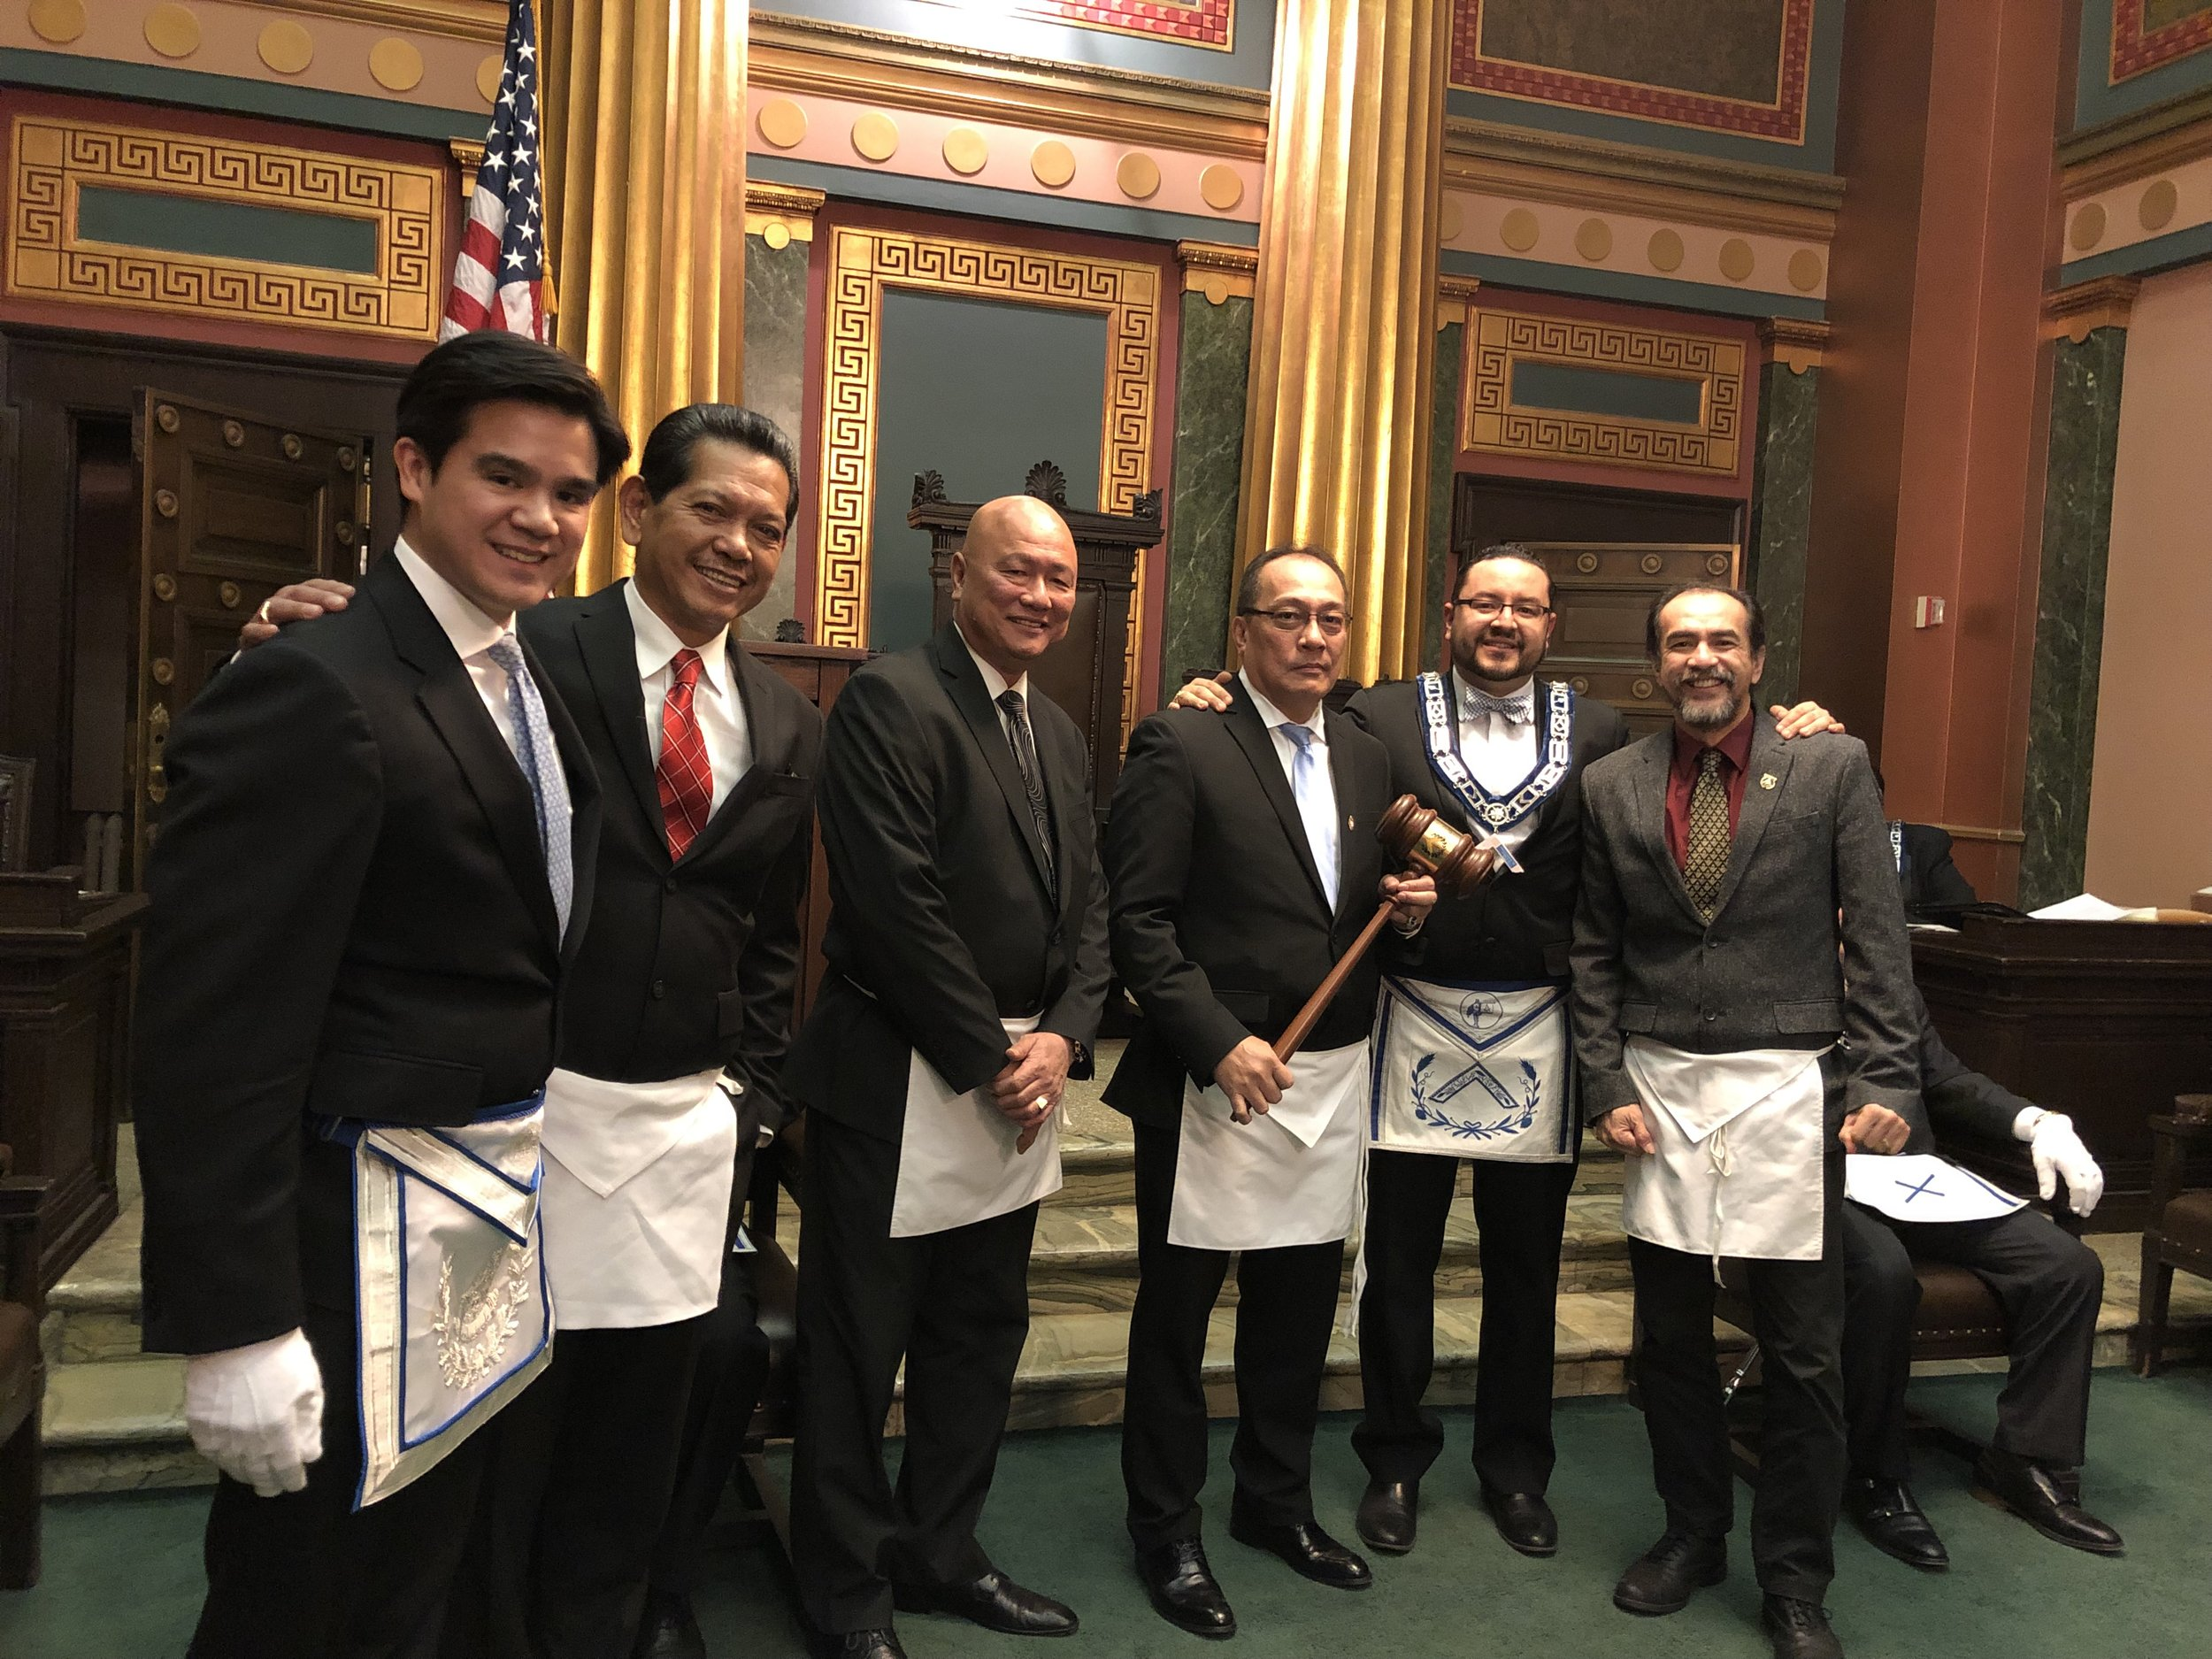 Columbian Lodge No. 484 takes the Traveling Gavel from Publicity Lodge No. 1000 on Monday, January 7, 2019. Where will the Gavel travel to next?   From L-R: WBro. Jeph Dais, Chaplain (Columbian 484); VWBro. Jojo Geronimo (Columbian 484), Trustee; RWBro. Adison Cruz, Member (Columbian 484); WBro. Violeto Palmere, Junior Warden (Columbian 484); WBro. Orlando Velez, Master (Publicity 1000); VWBro. Liberato Lao, Treasurer (Columbian 484).